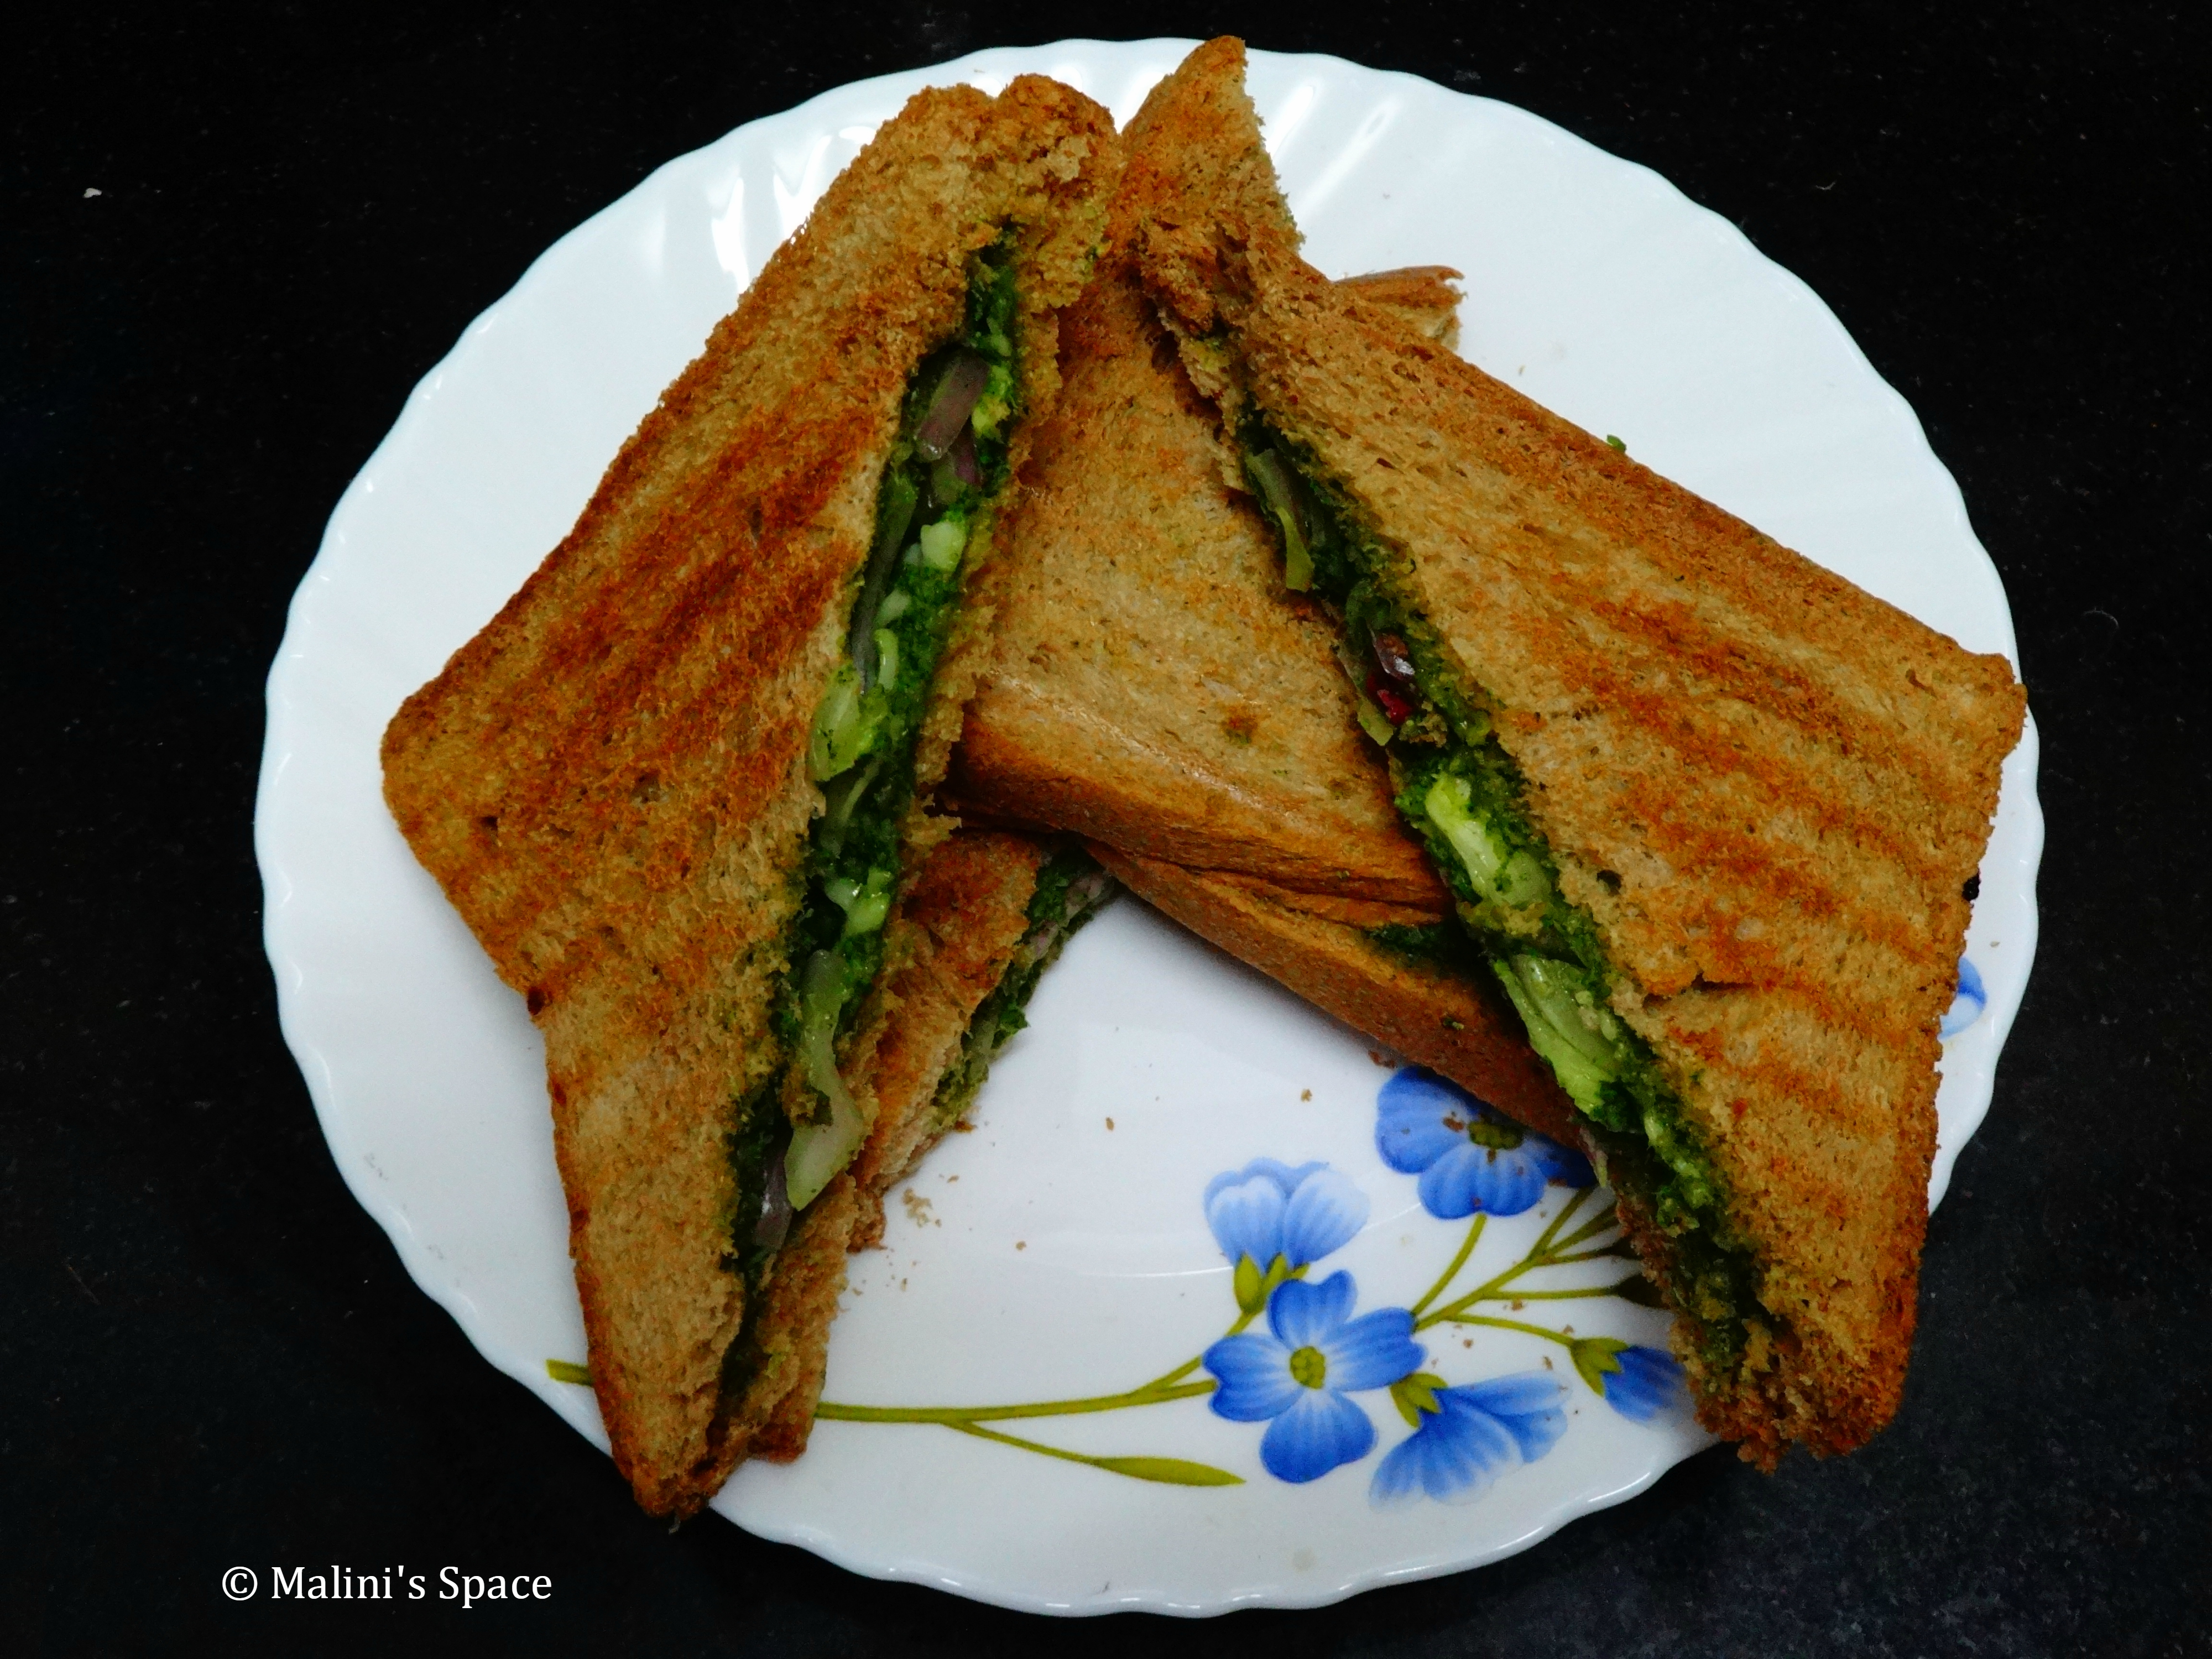 Mint and Onion Sandwich